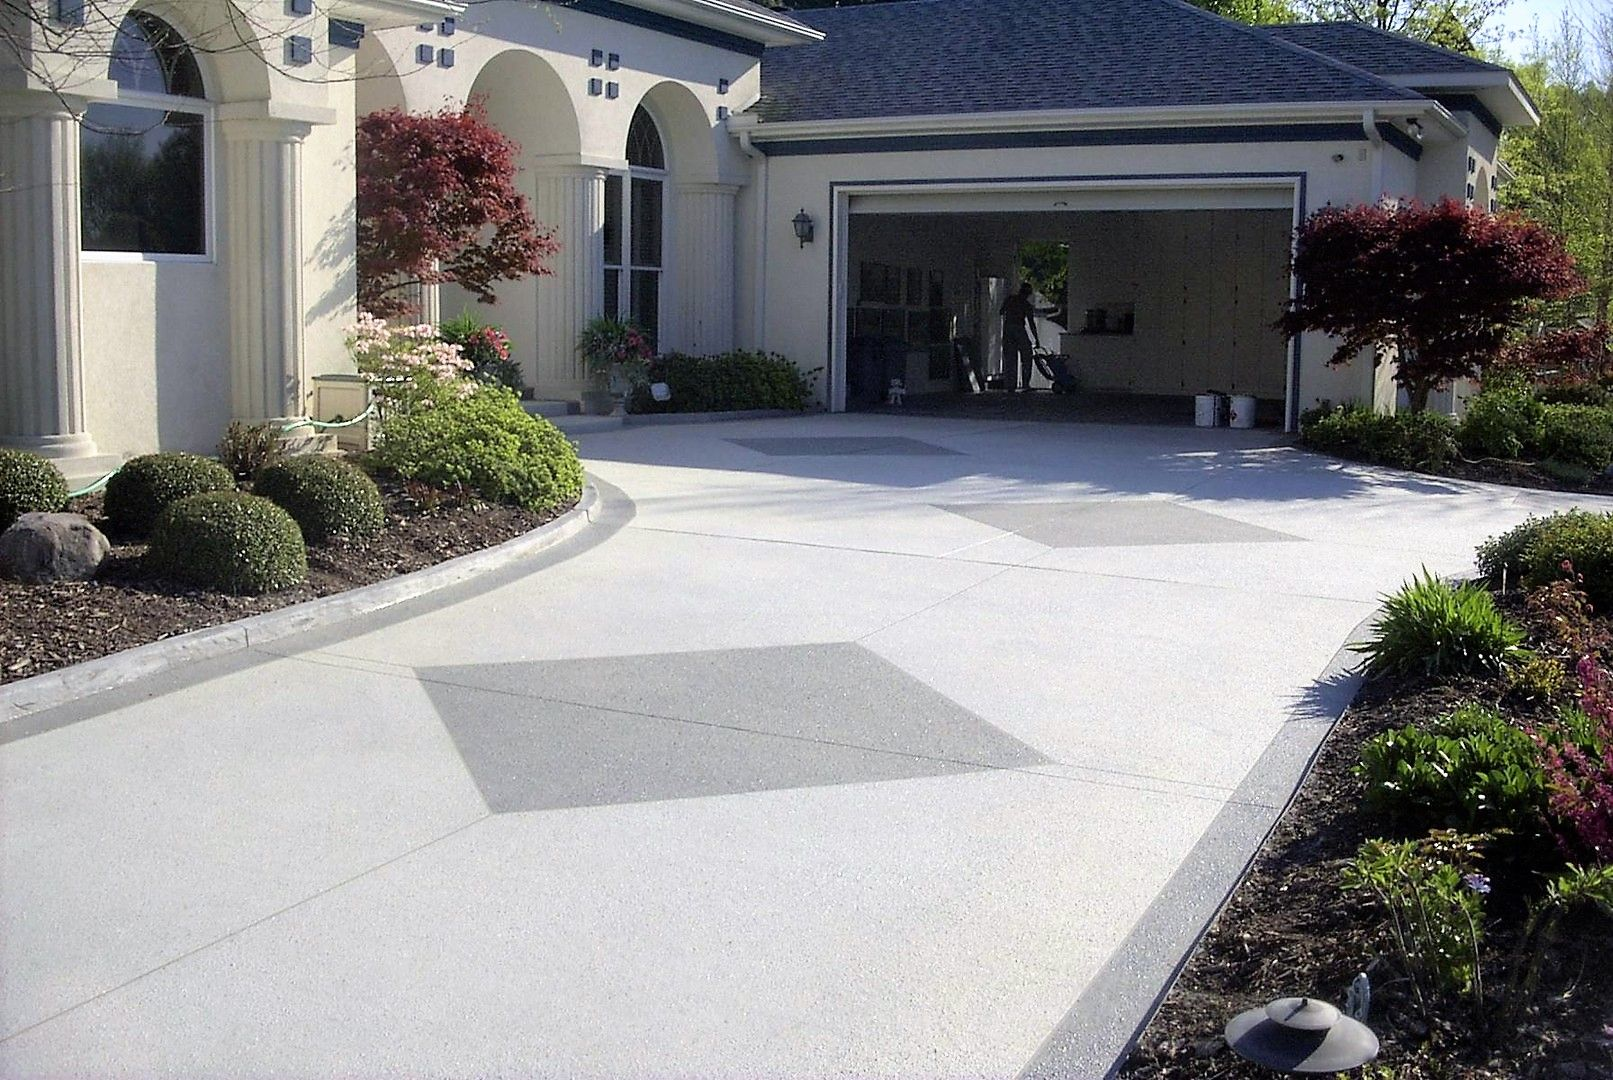 A Driveway Resurfacing Can Make The Driveway Look New Again At A Minimal Cost Call 281 407 0779 For Driveway Resurfacing Concrete Decor Concrete Driveways